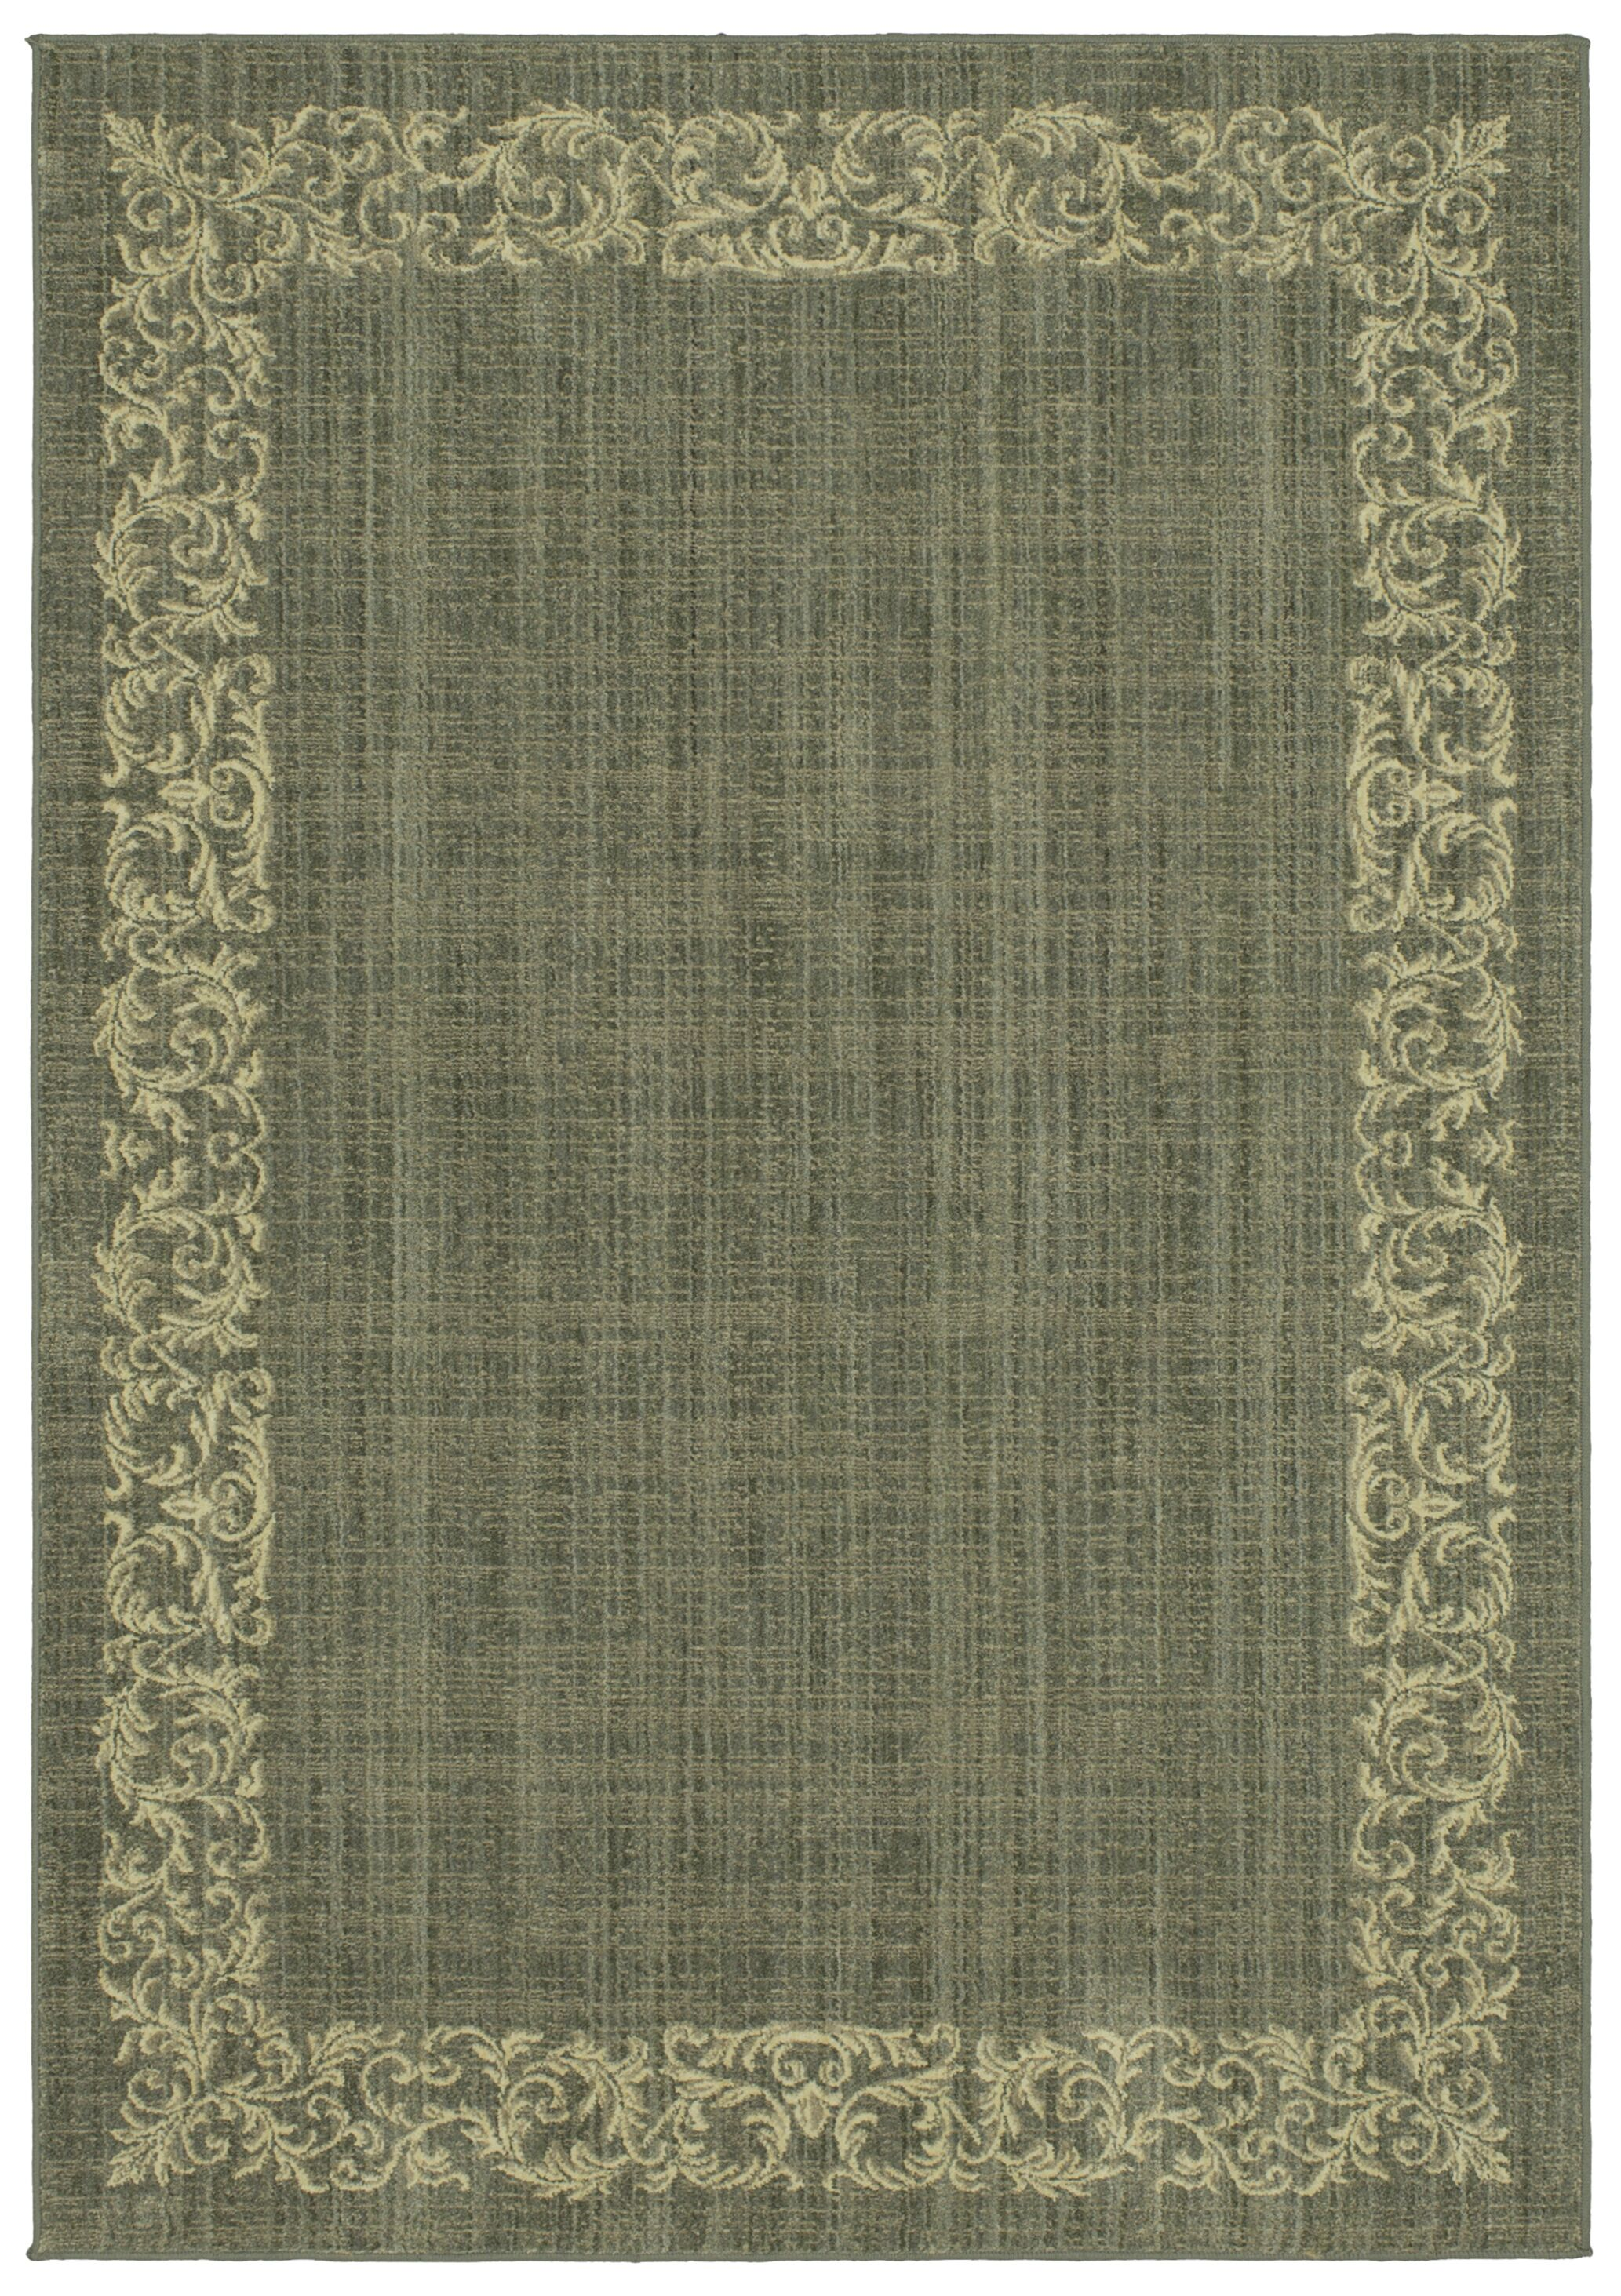 Liola Green Area Rug Rug Size: Rectangle 8' x 10'